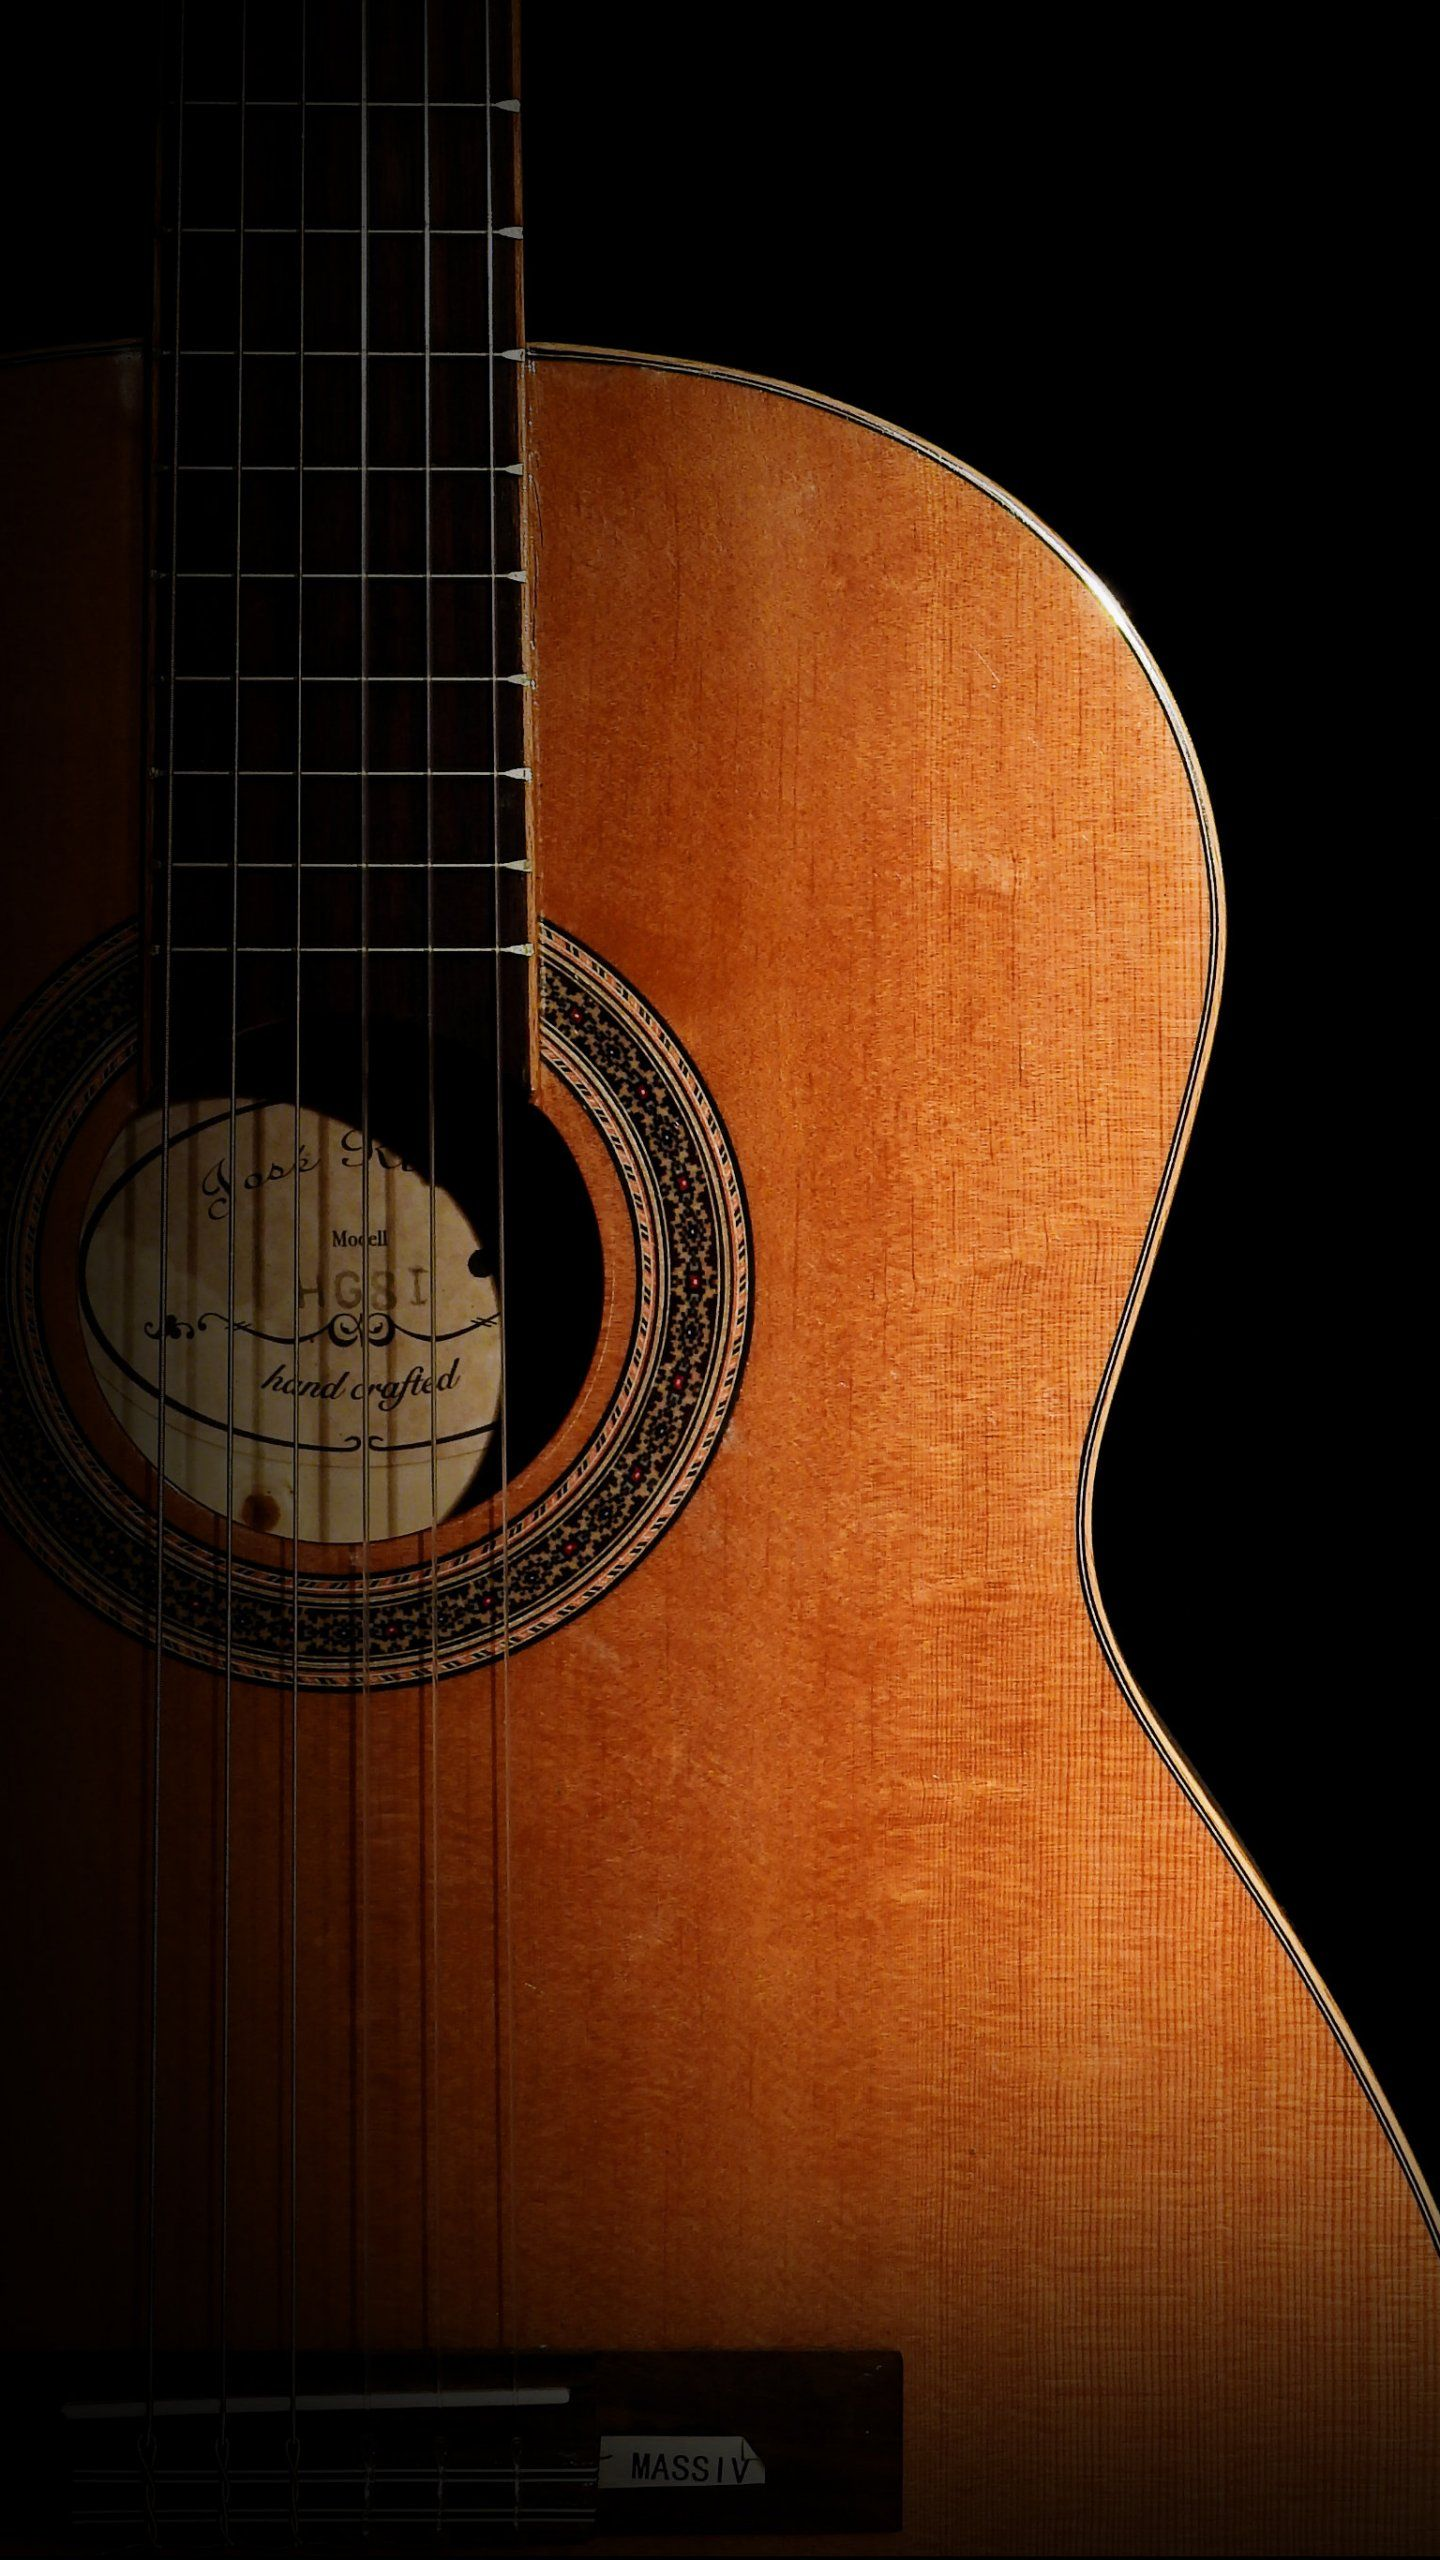 Guitar Wallpaper Iphone Android Desktop Backgrounds Guitar Wallpaper Iphone Acoustic Guitar Photography Acoustic Guitar